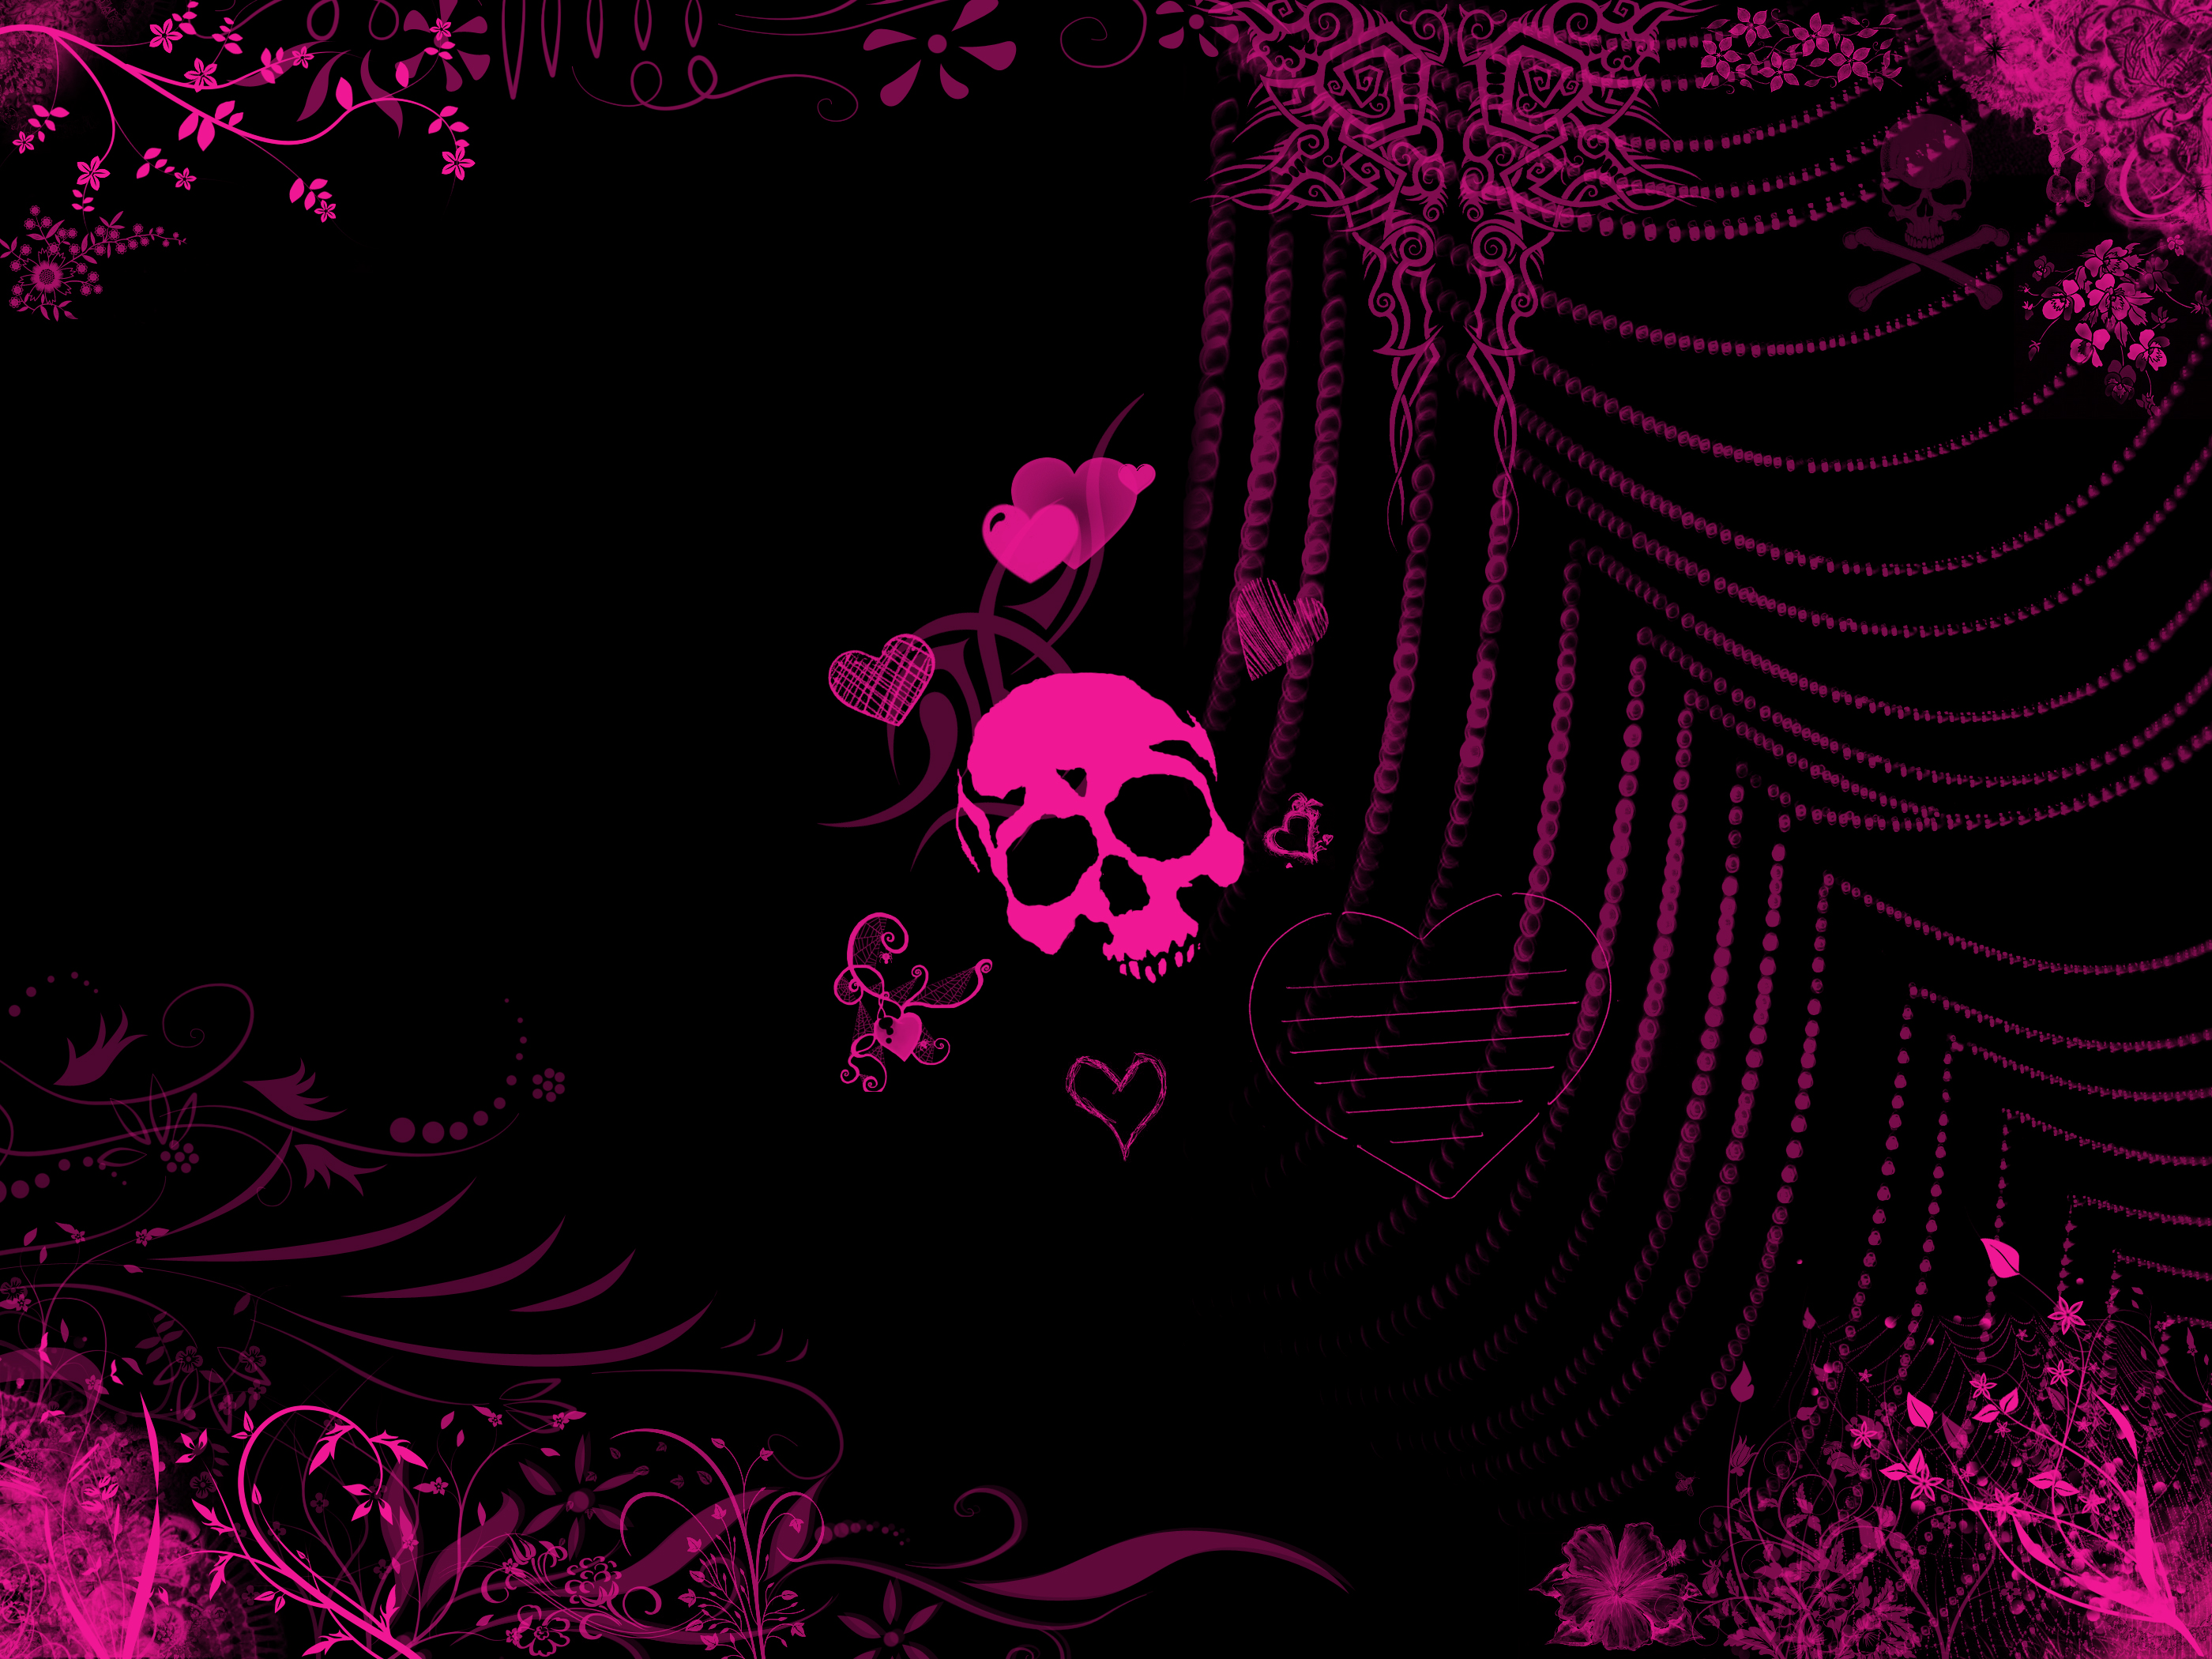 Free download Girly Skull Wallpaper Related wallpaper for